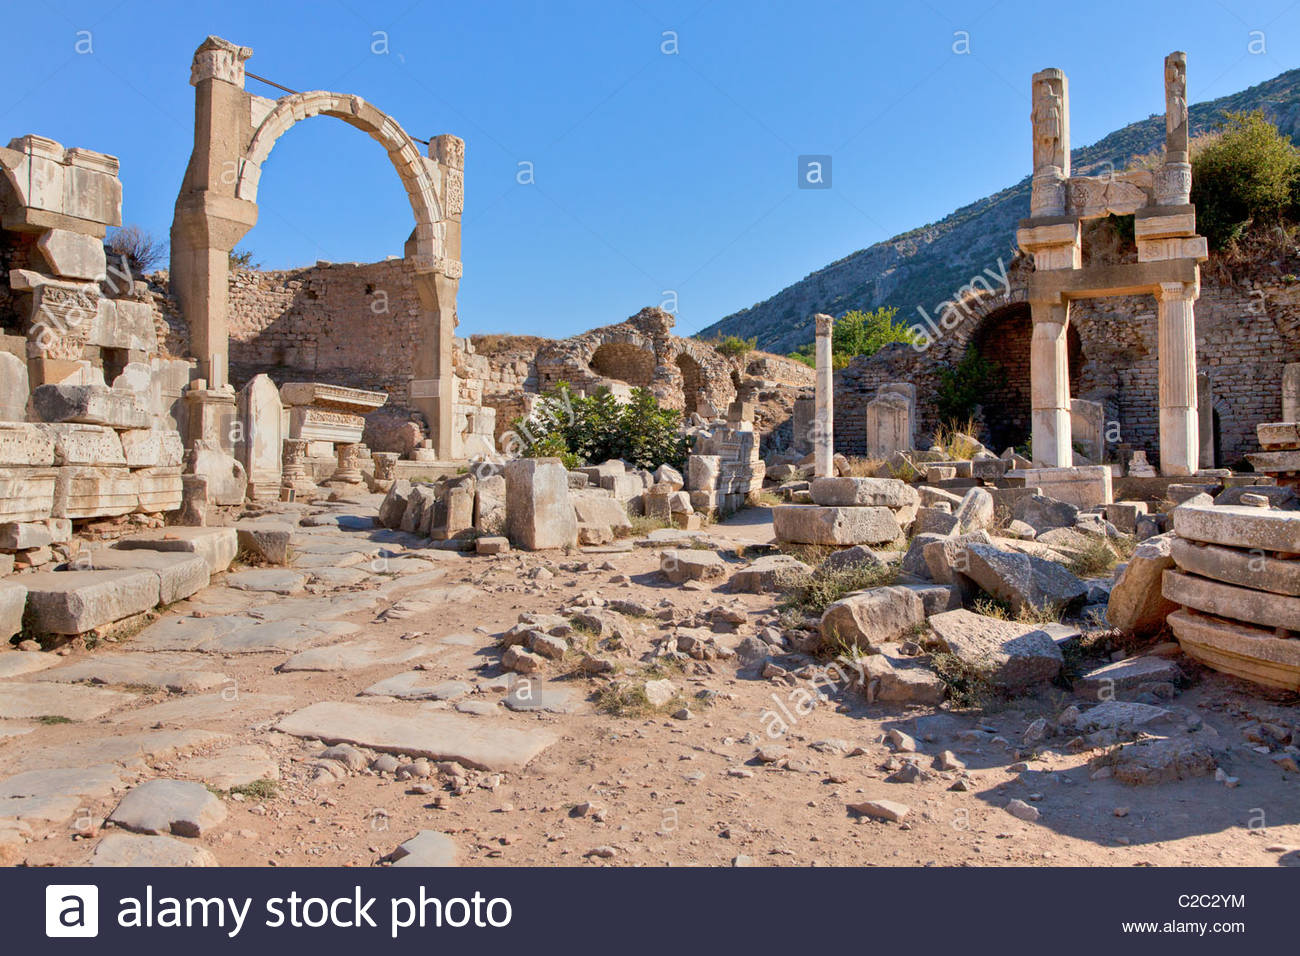 The well-preserved ruins of the Fountain of Pollio at Ephesus. - Stock Image